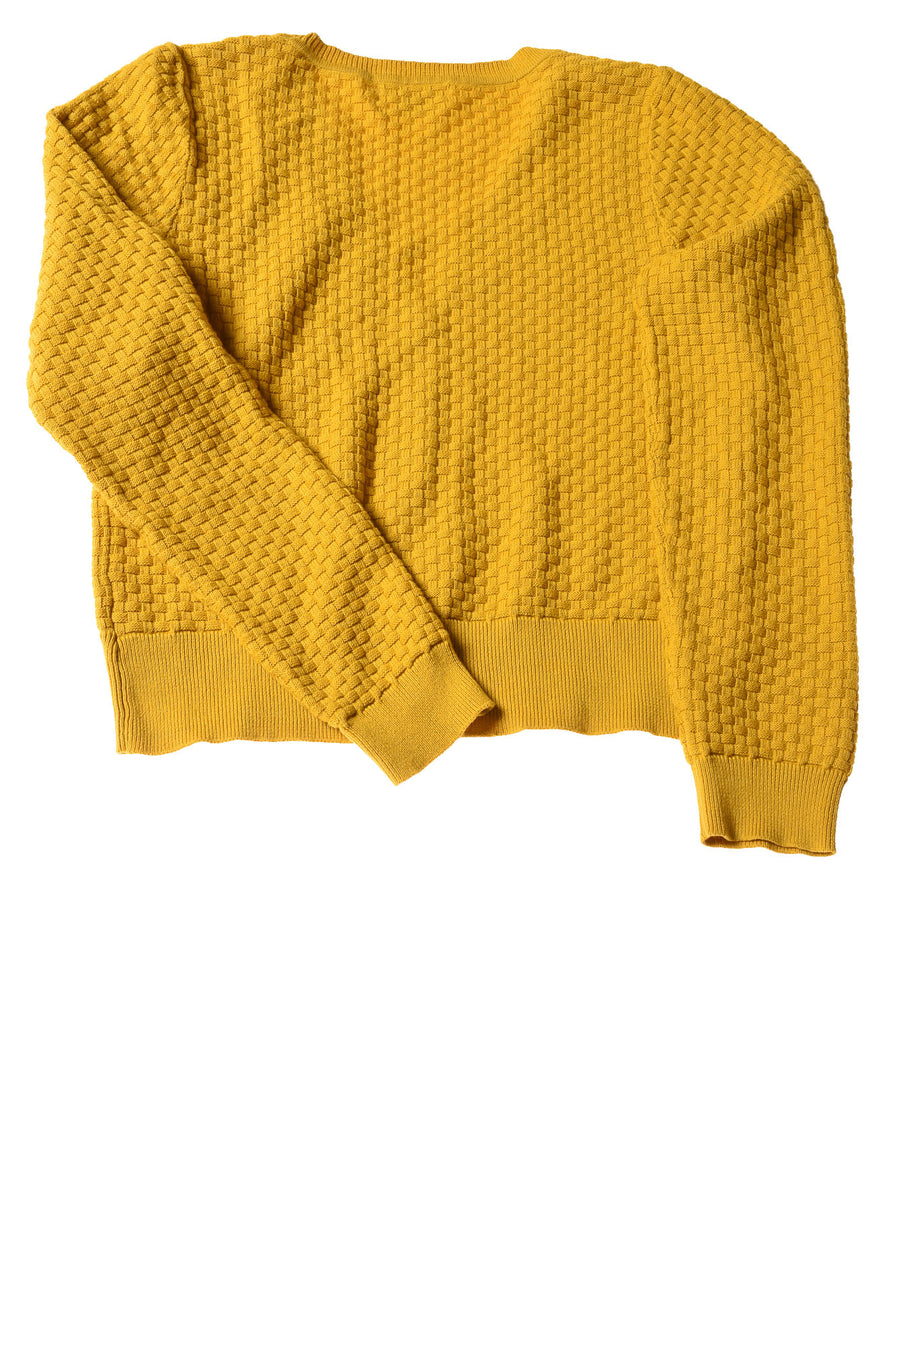 Women's Sweater By Liz Clairborne